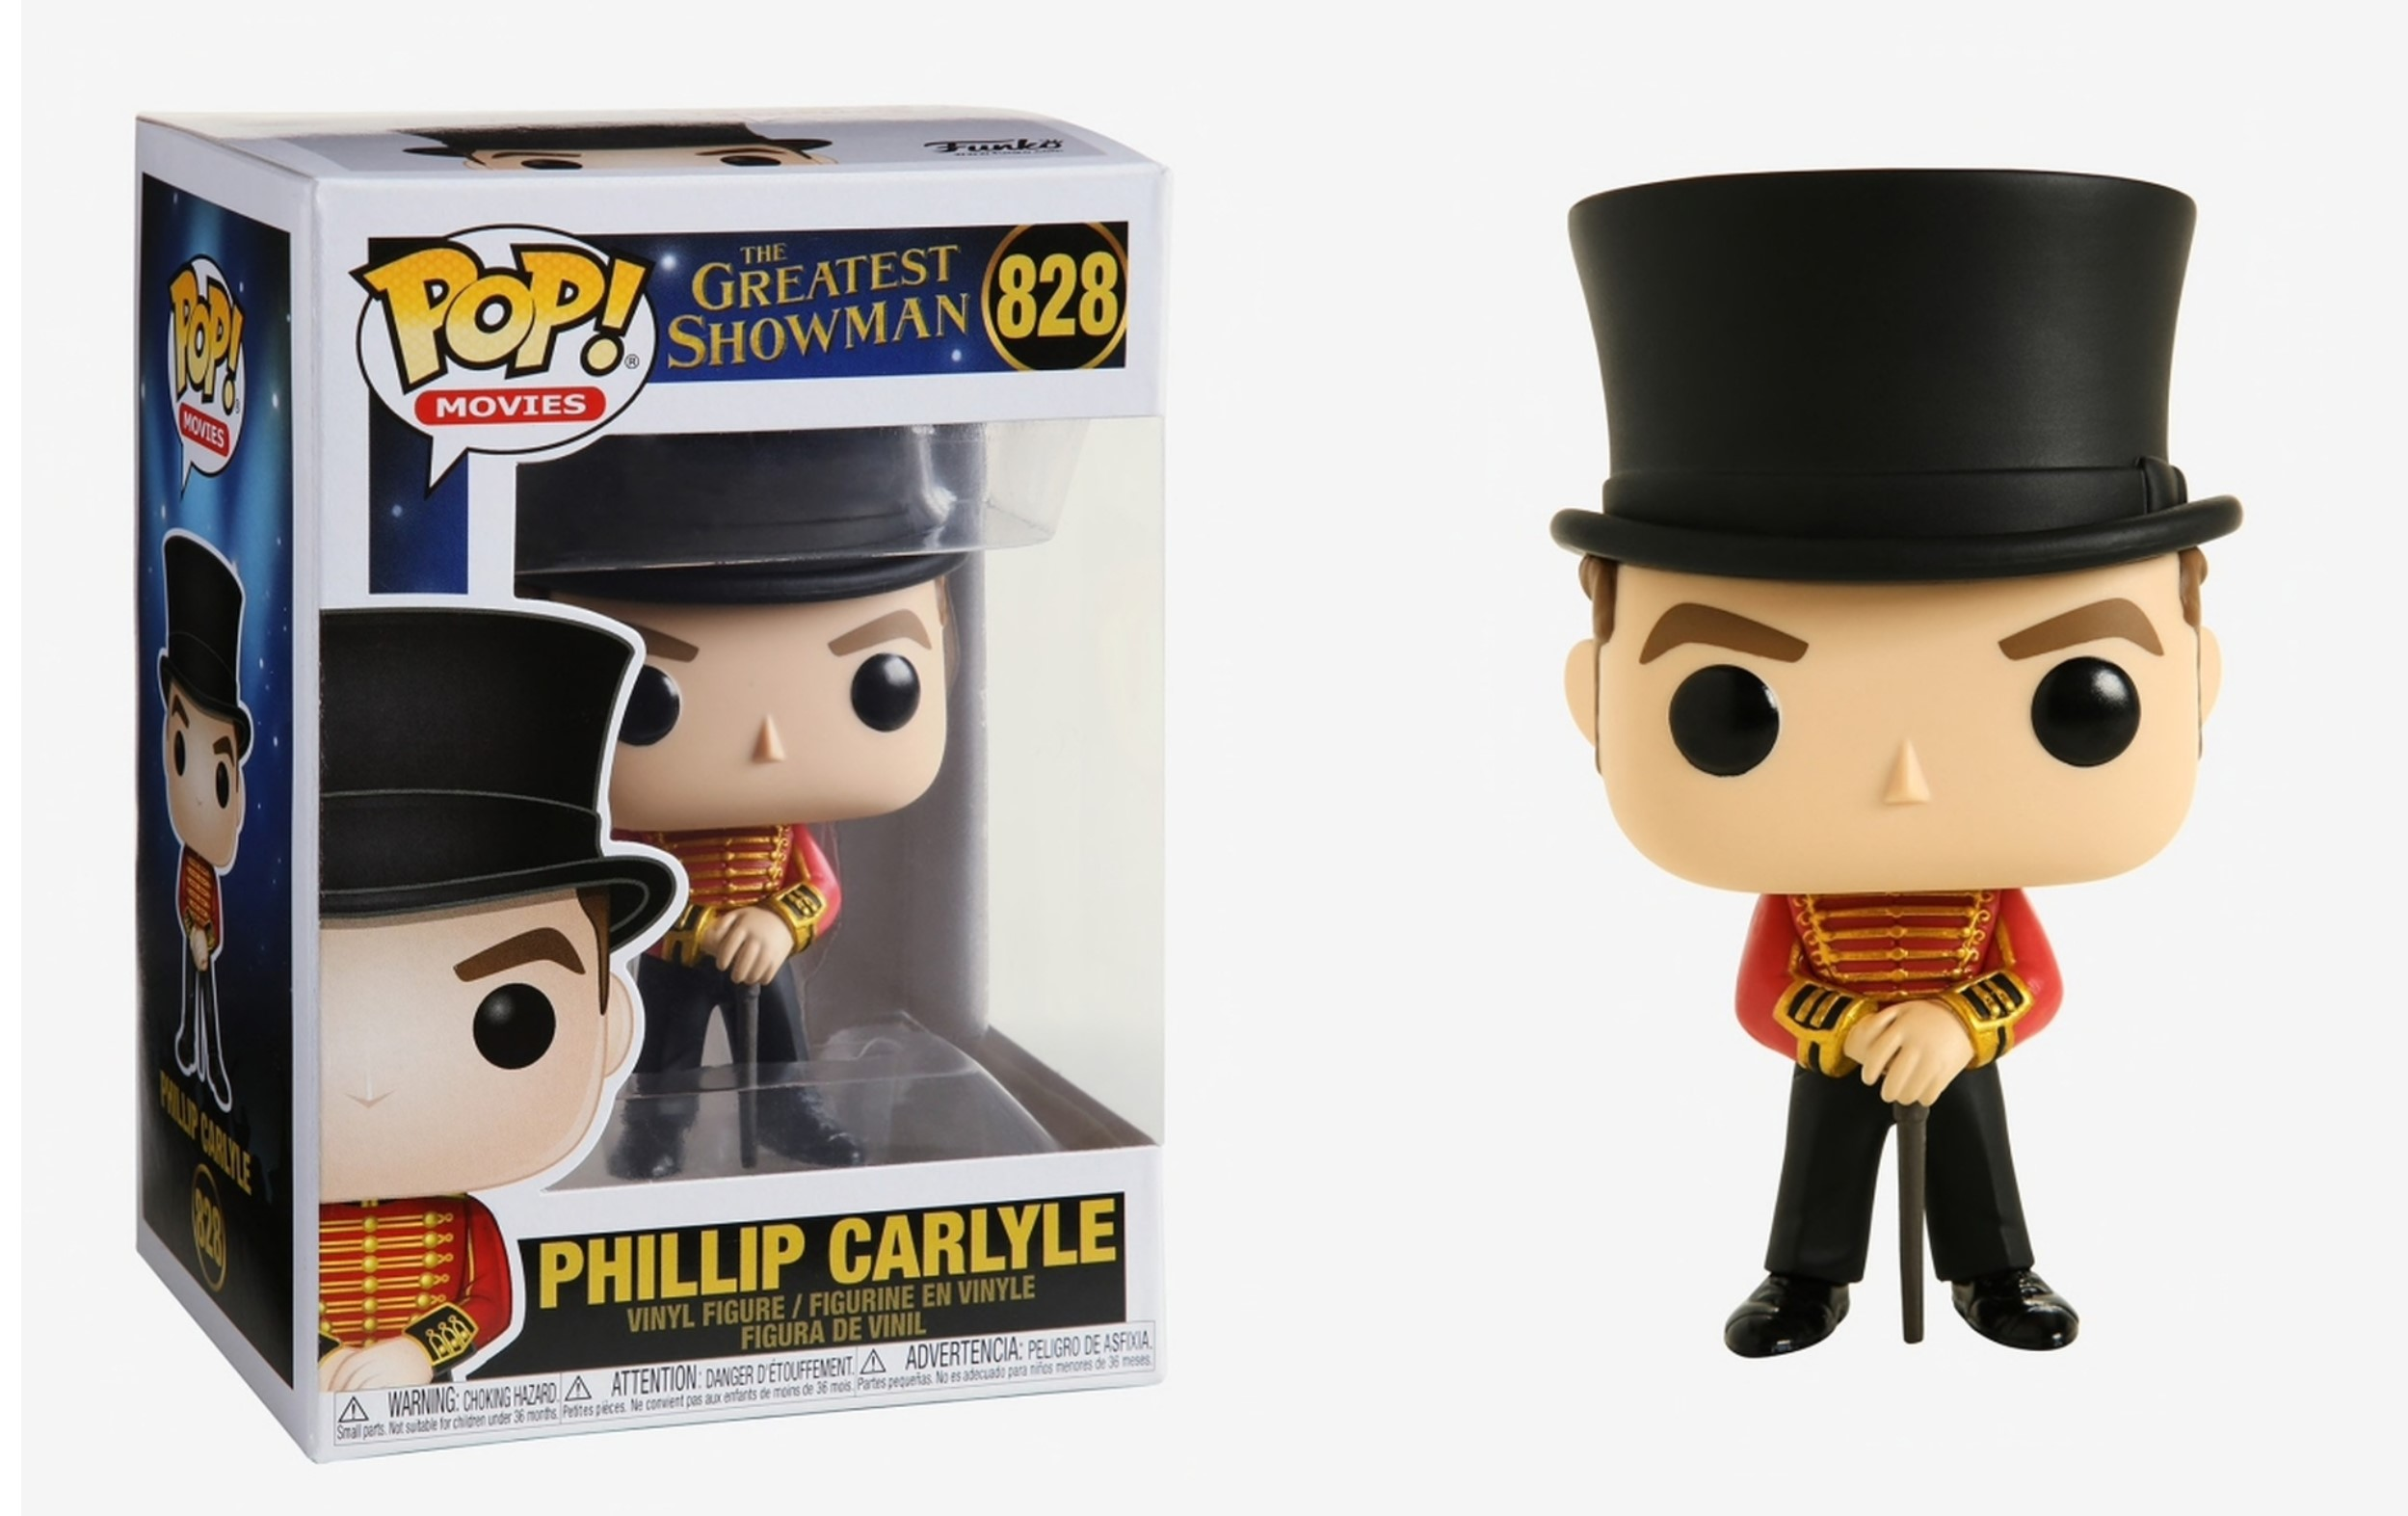 The Greatest Showman Phillip Carlyle 828 Funko POP Vinyl Figure